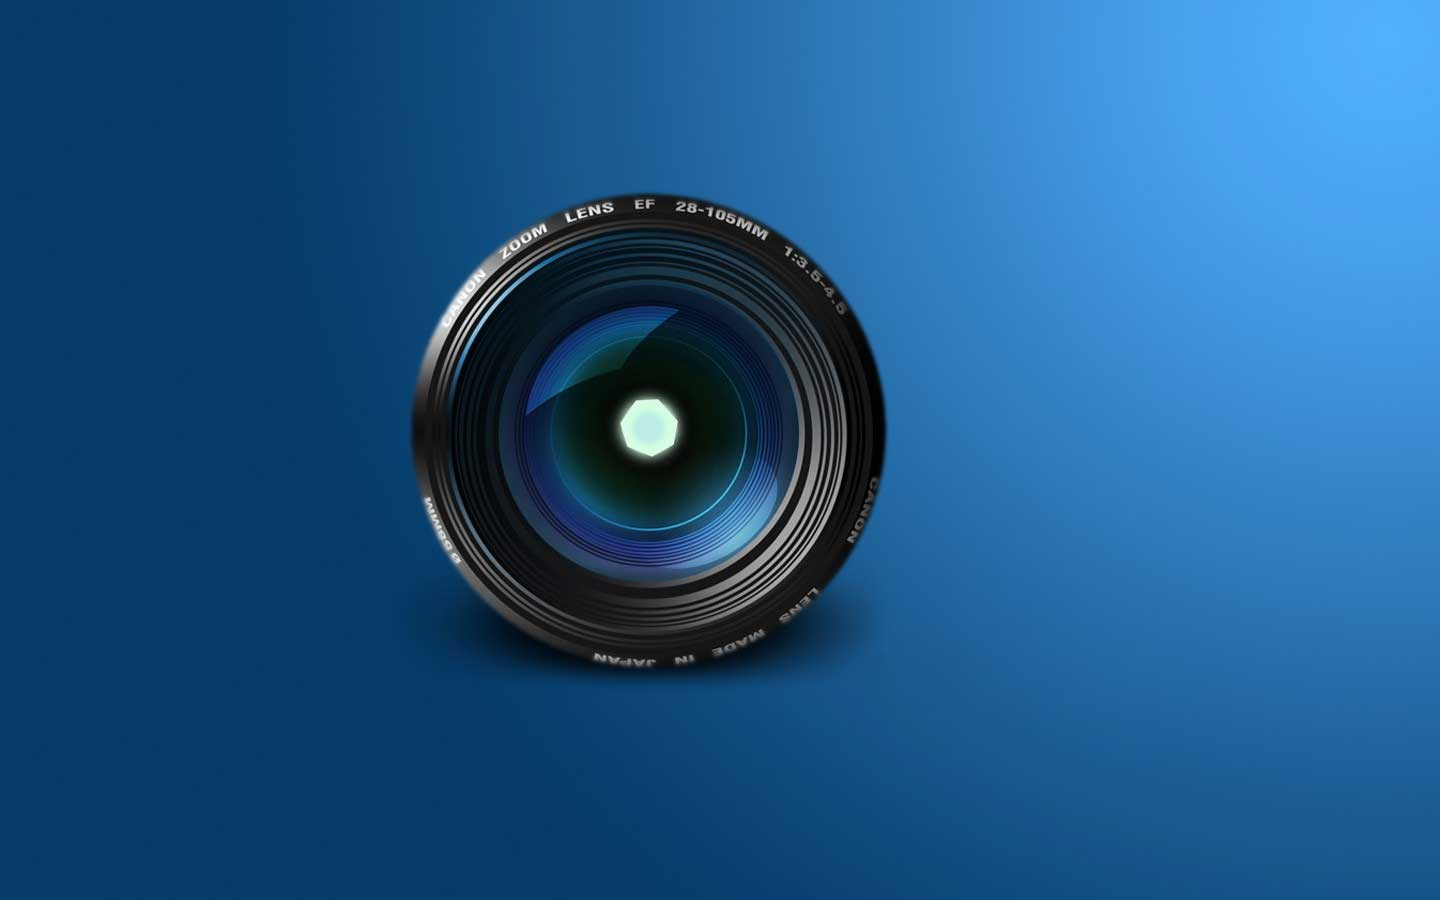 Download Lens Wallpapers | Aurora-awards.com